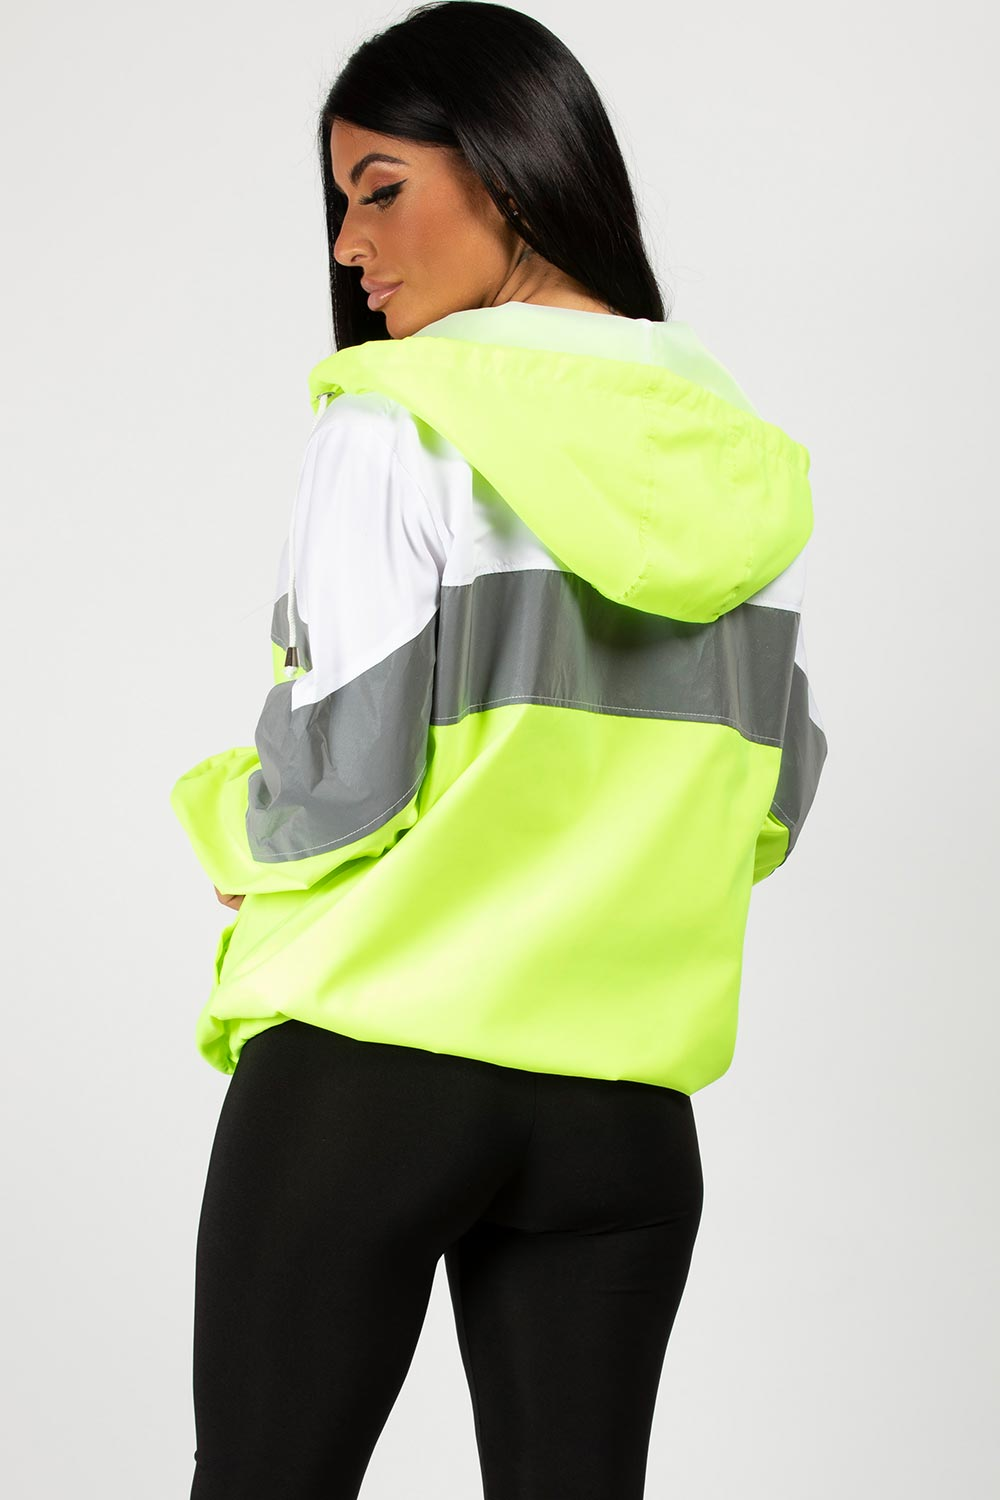 neon green reflective oversized jacket